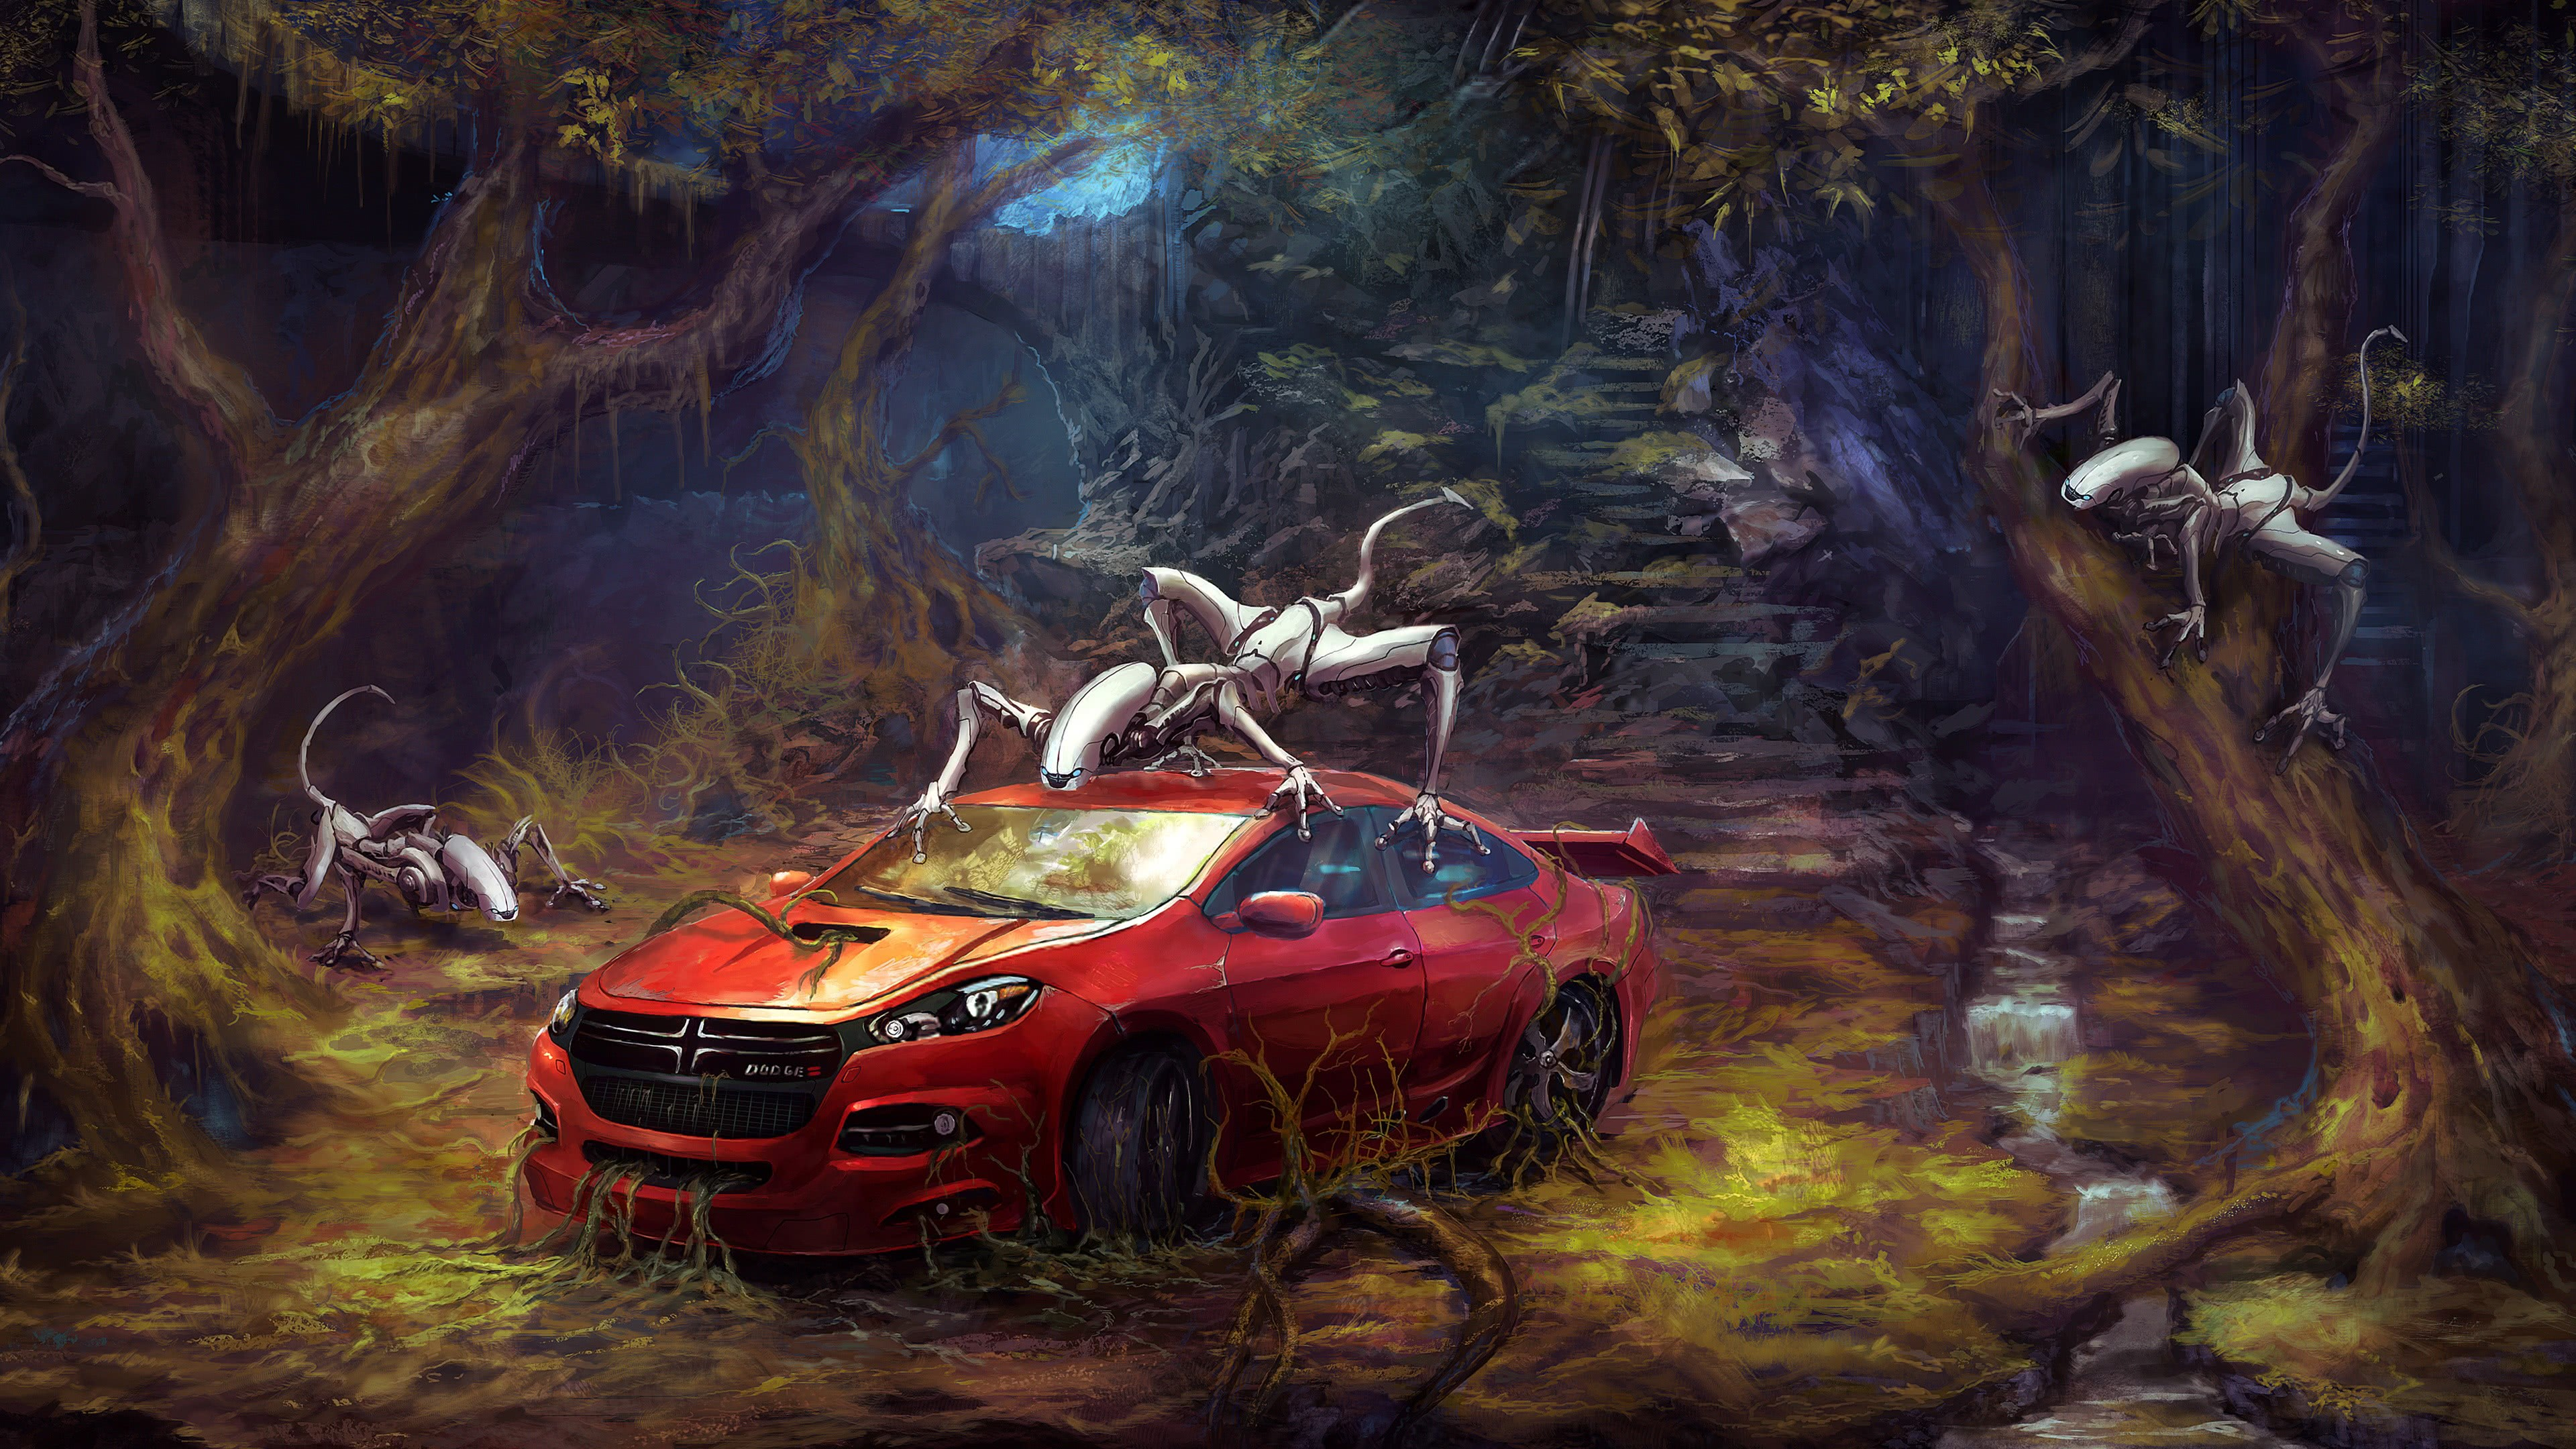 Toyota FT1 In Forest With Robots UHD 4K Wallpaper | Pixelz